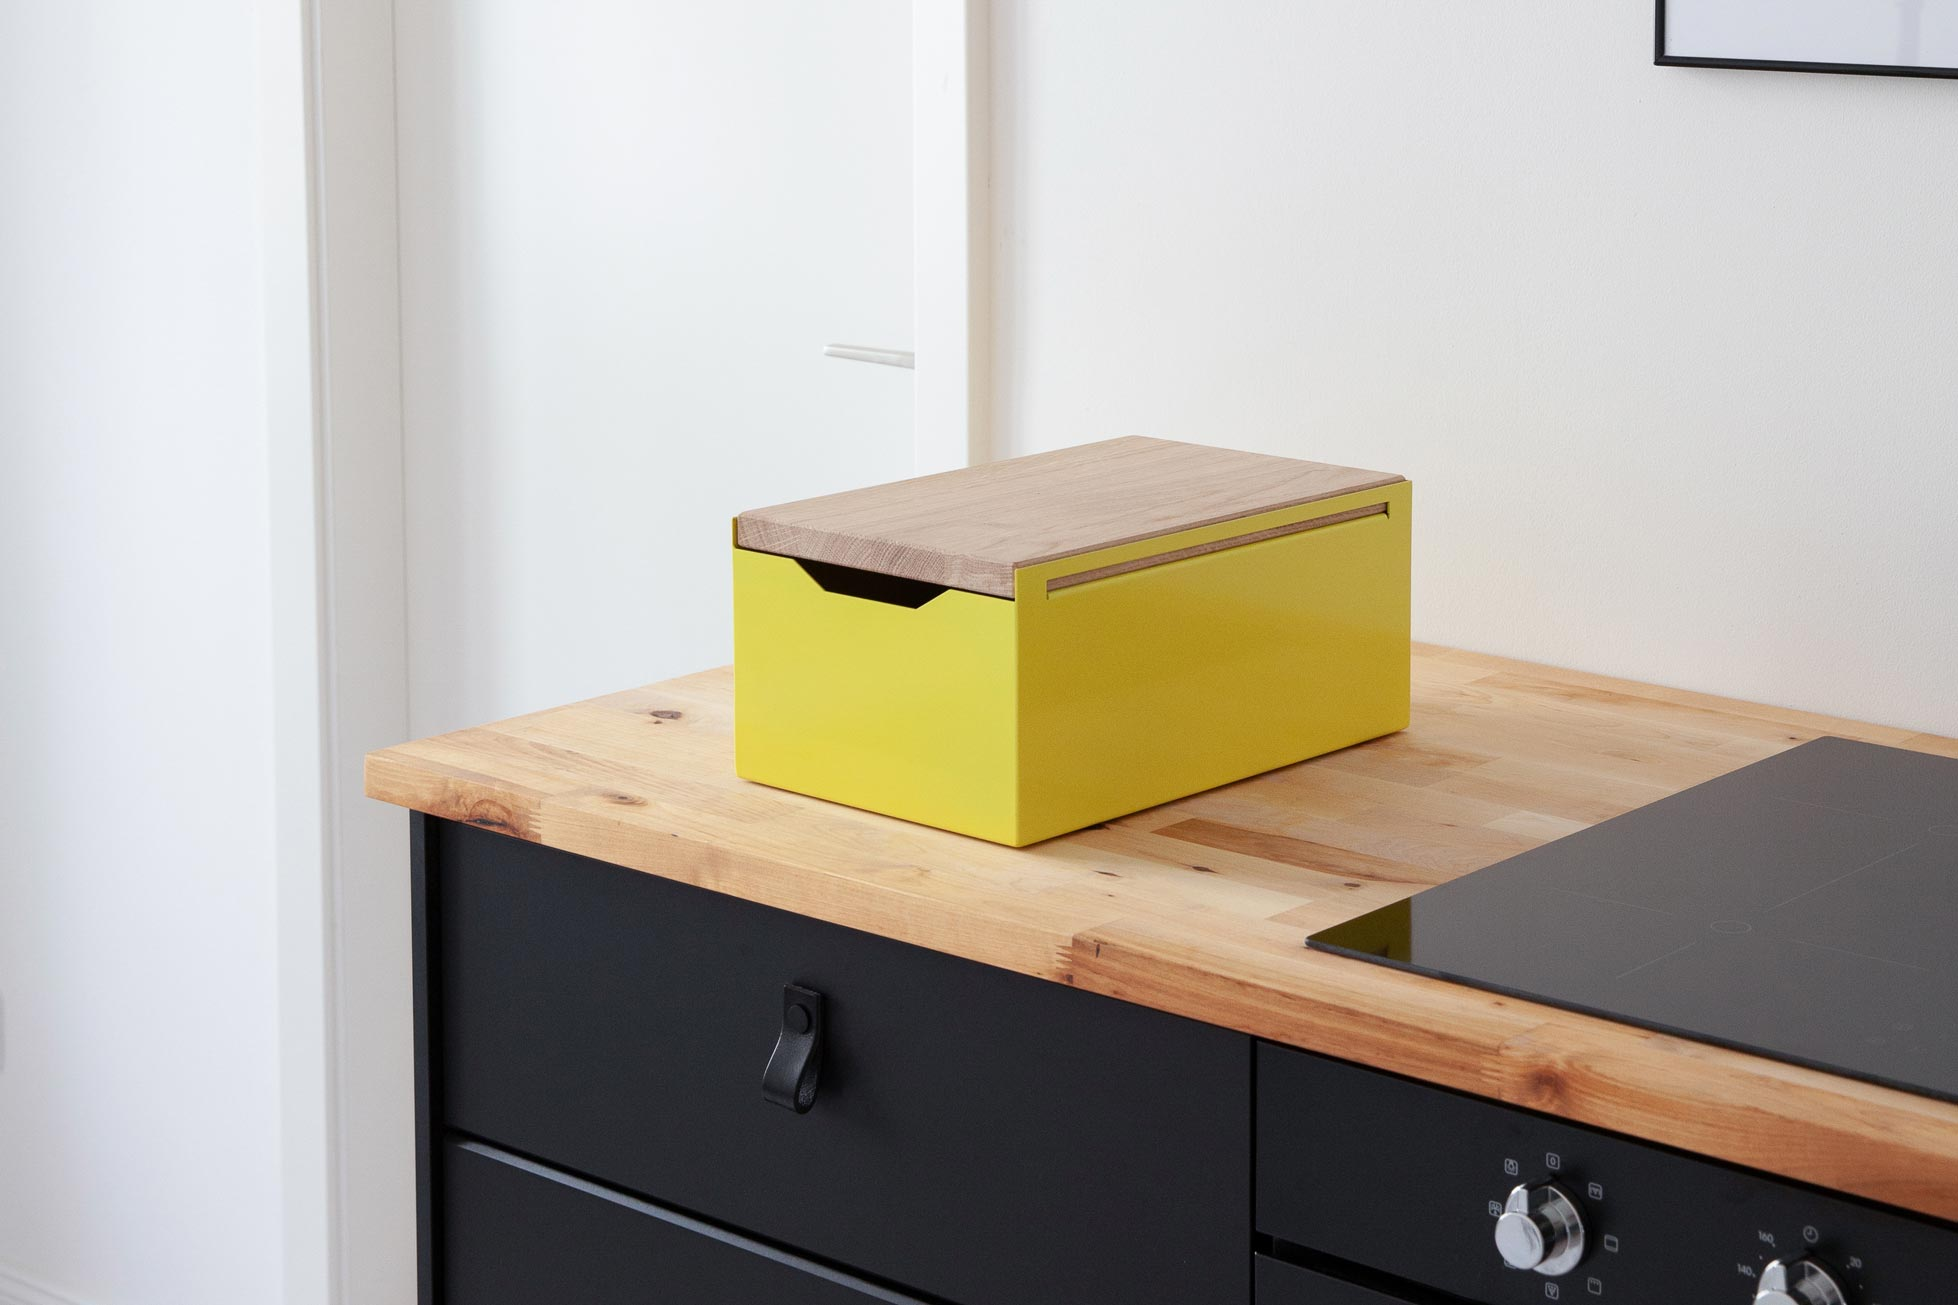 The Bread Box / Yellow shown here on a wooden countertop of a black kitchenette - Fantastic Frank Furnished Apartment.